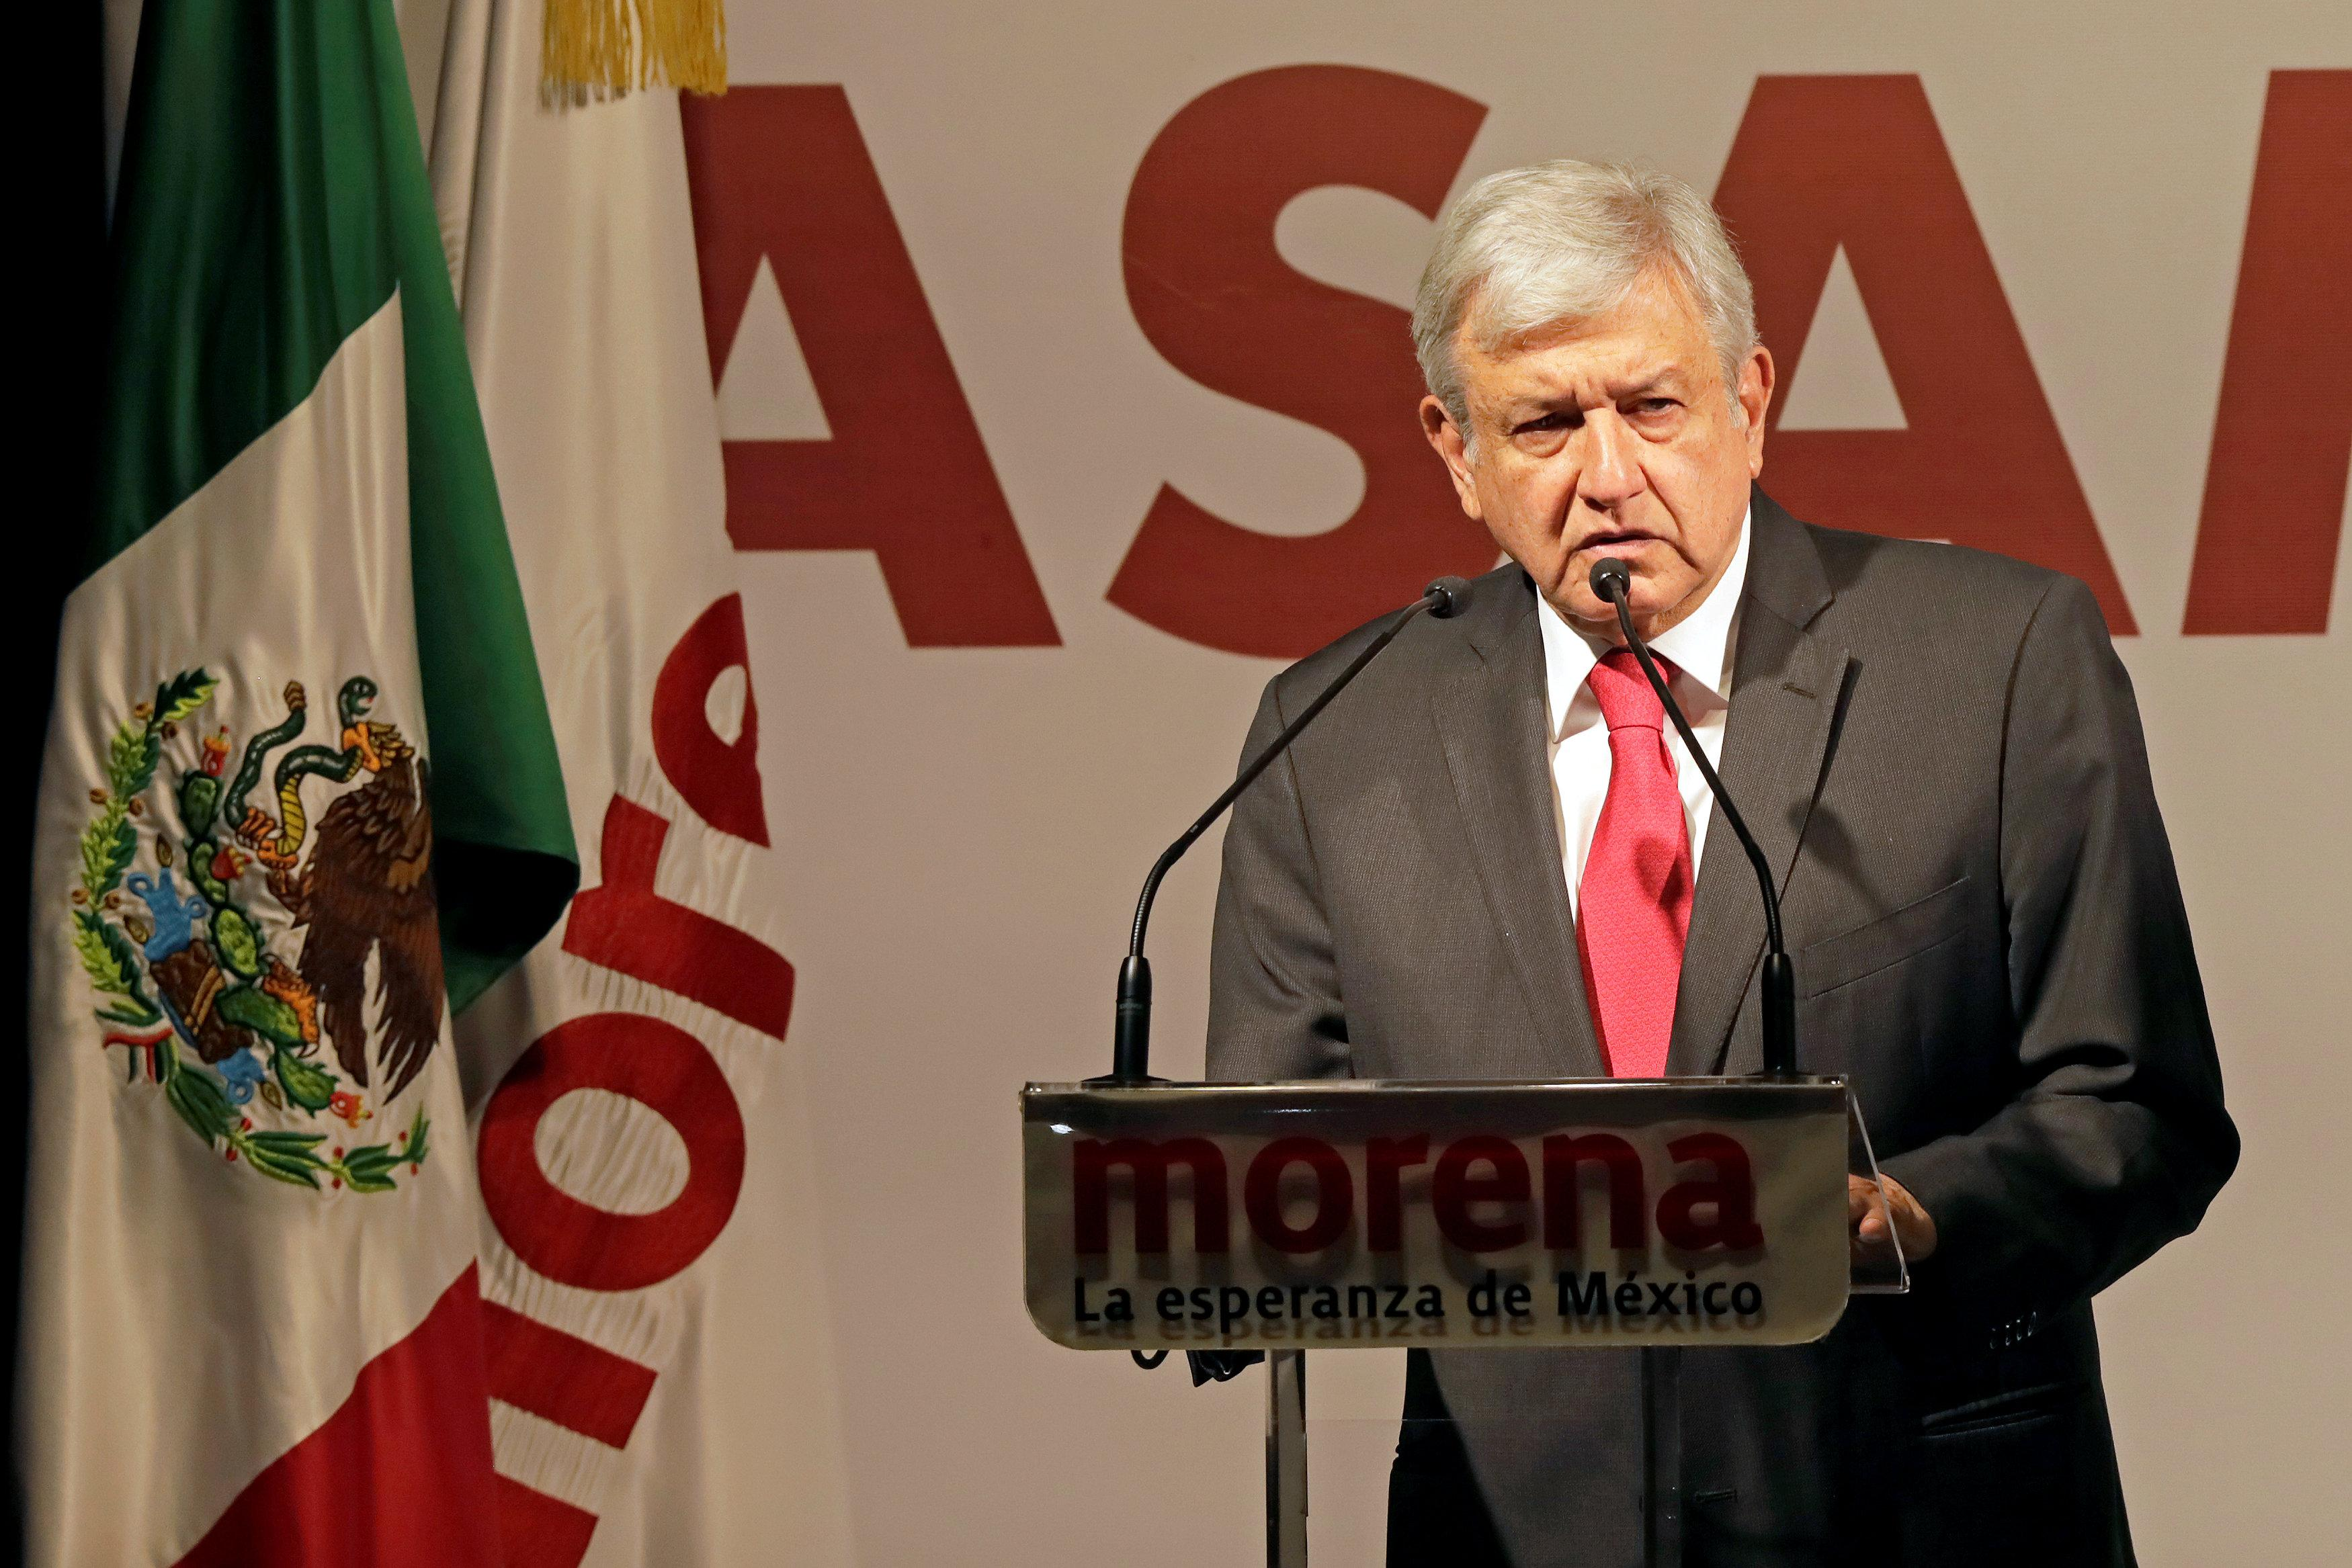 Andres Manuel Lopez Obrador delivers a speech after being sworn-in as presidential candidate of the National Regeneration Movement (MORENA) during the party's convention at a hotel in Mexico City, Mexico February 18, 2018. Henry Romero